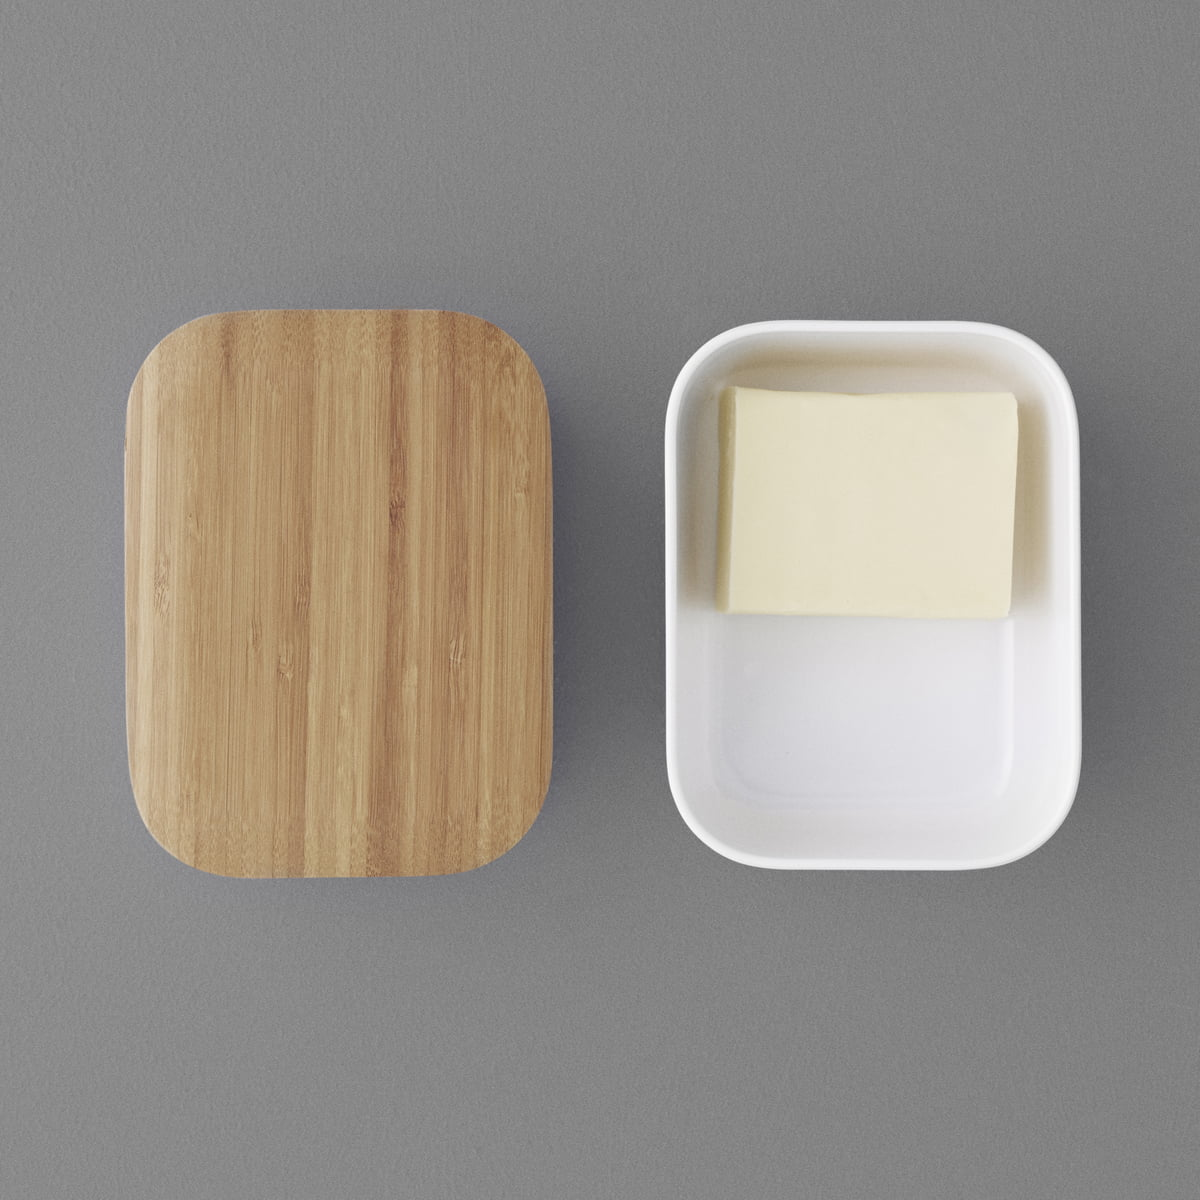 Box It Butterdose Von Rig Tig By Stelton Connox